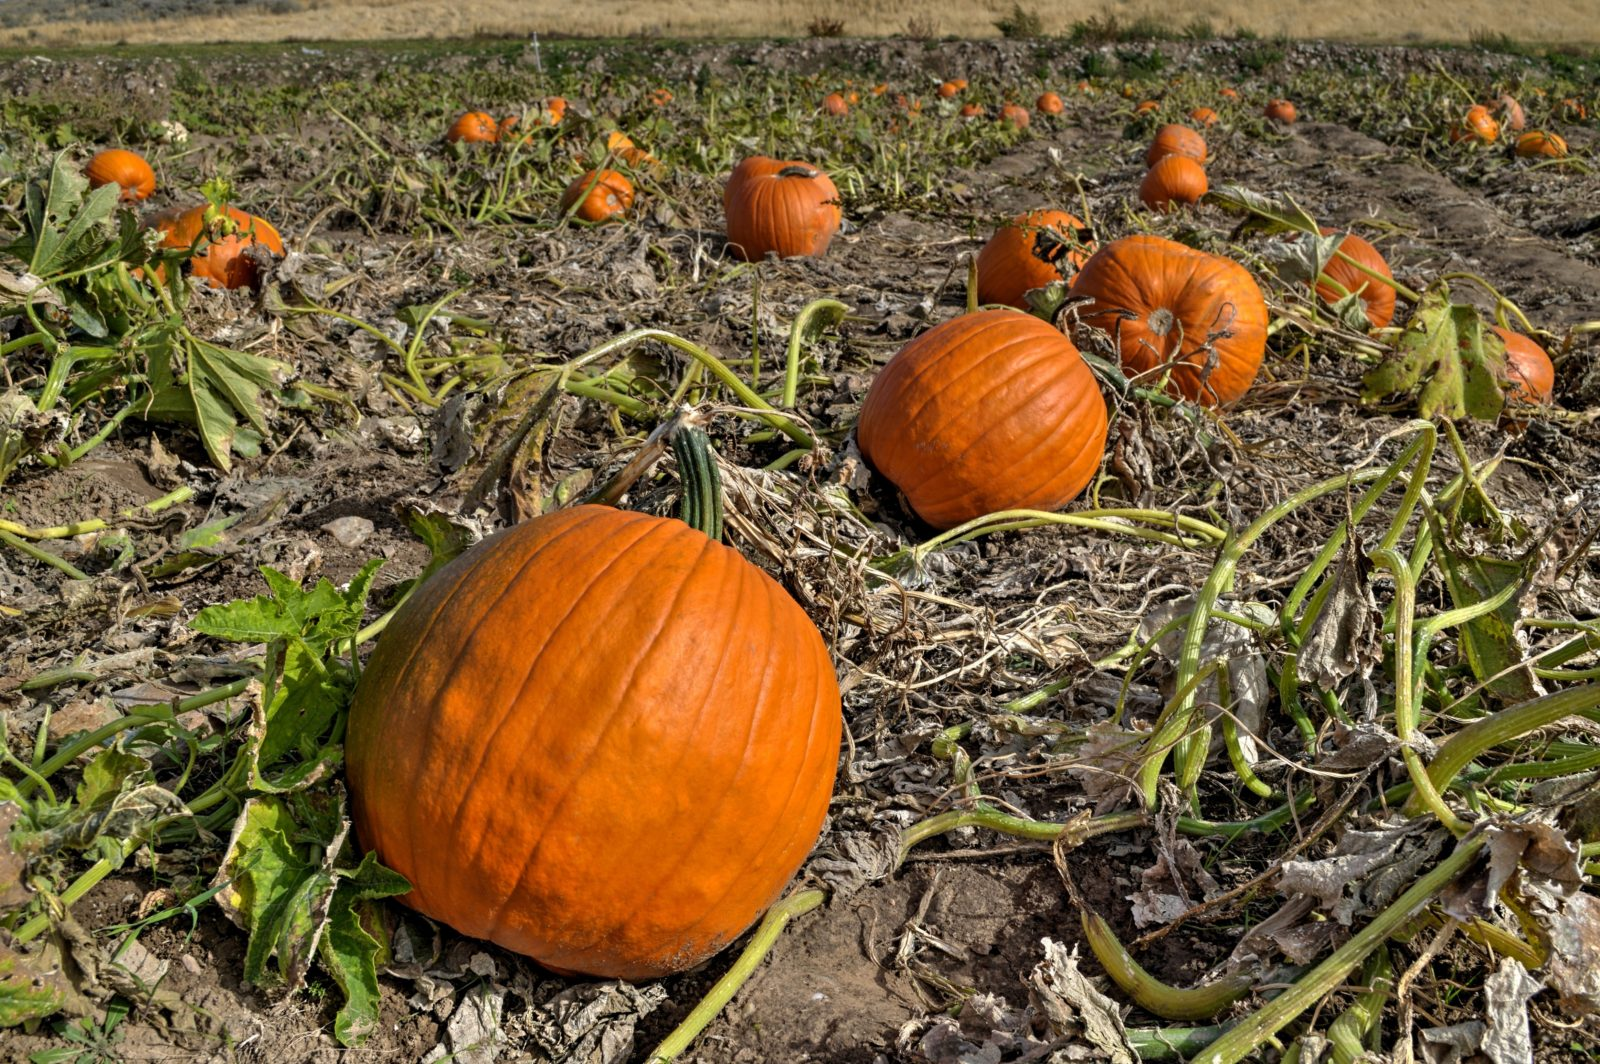 Pumpkins Equal Autumn